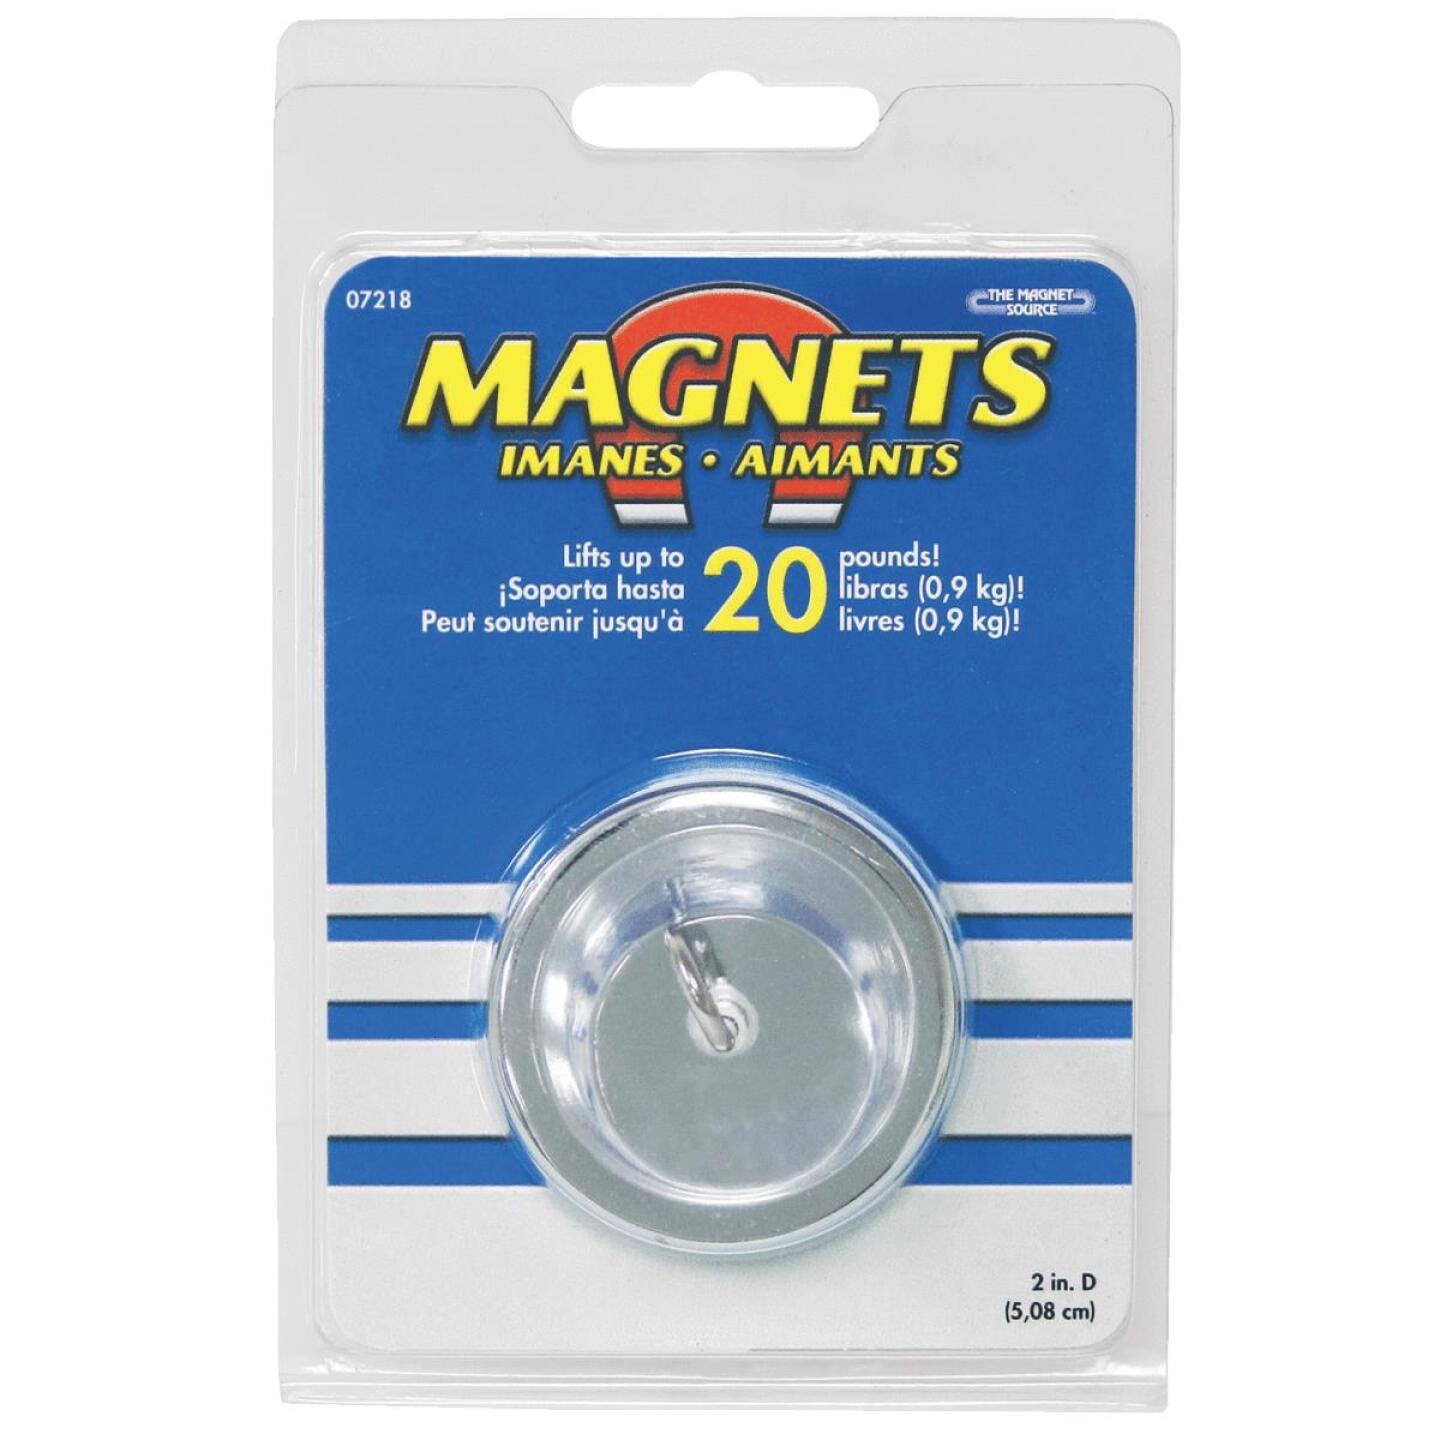 Master Magnetics 20 Lb. Magnetic 2 in. Handi-Hook Image 3